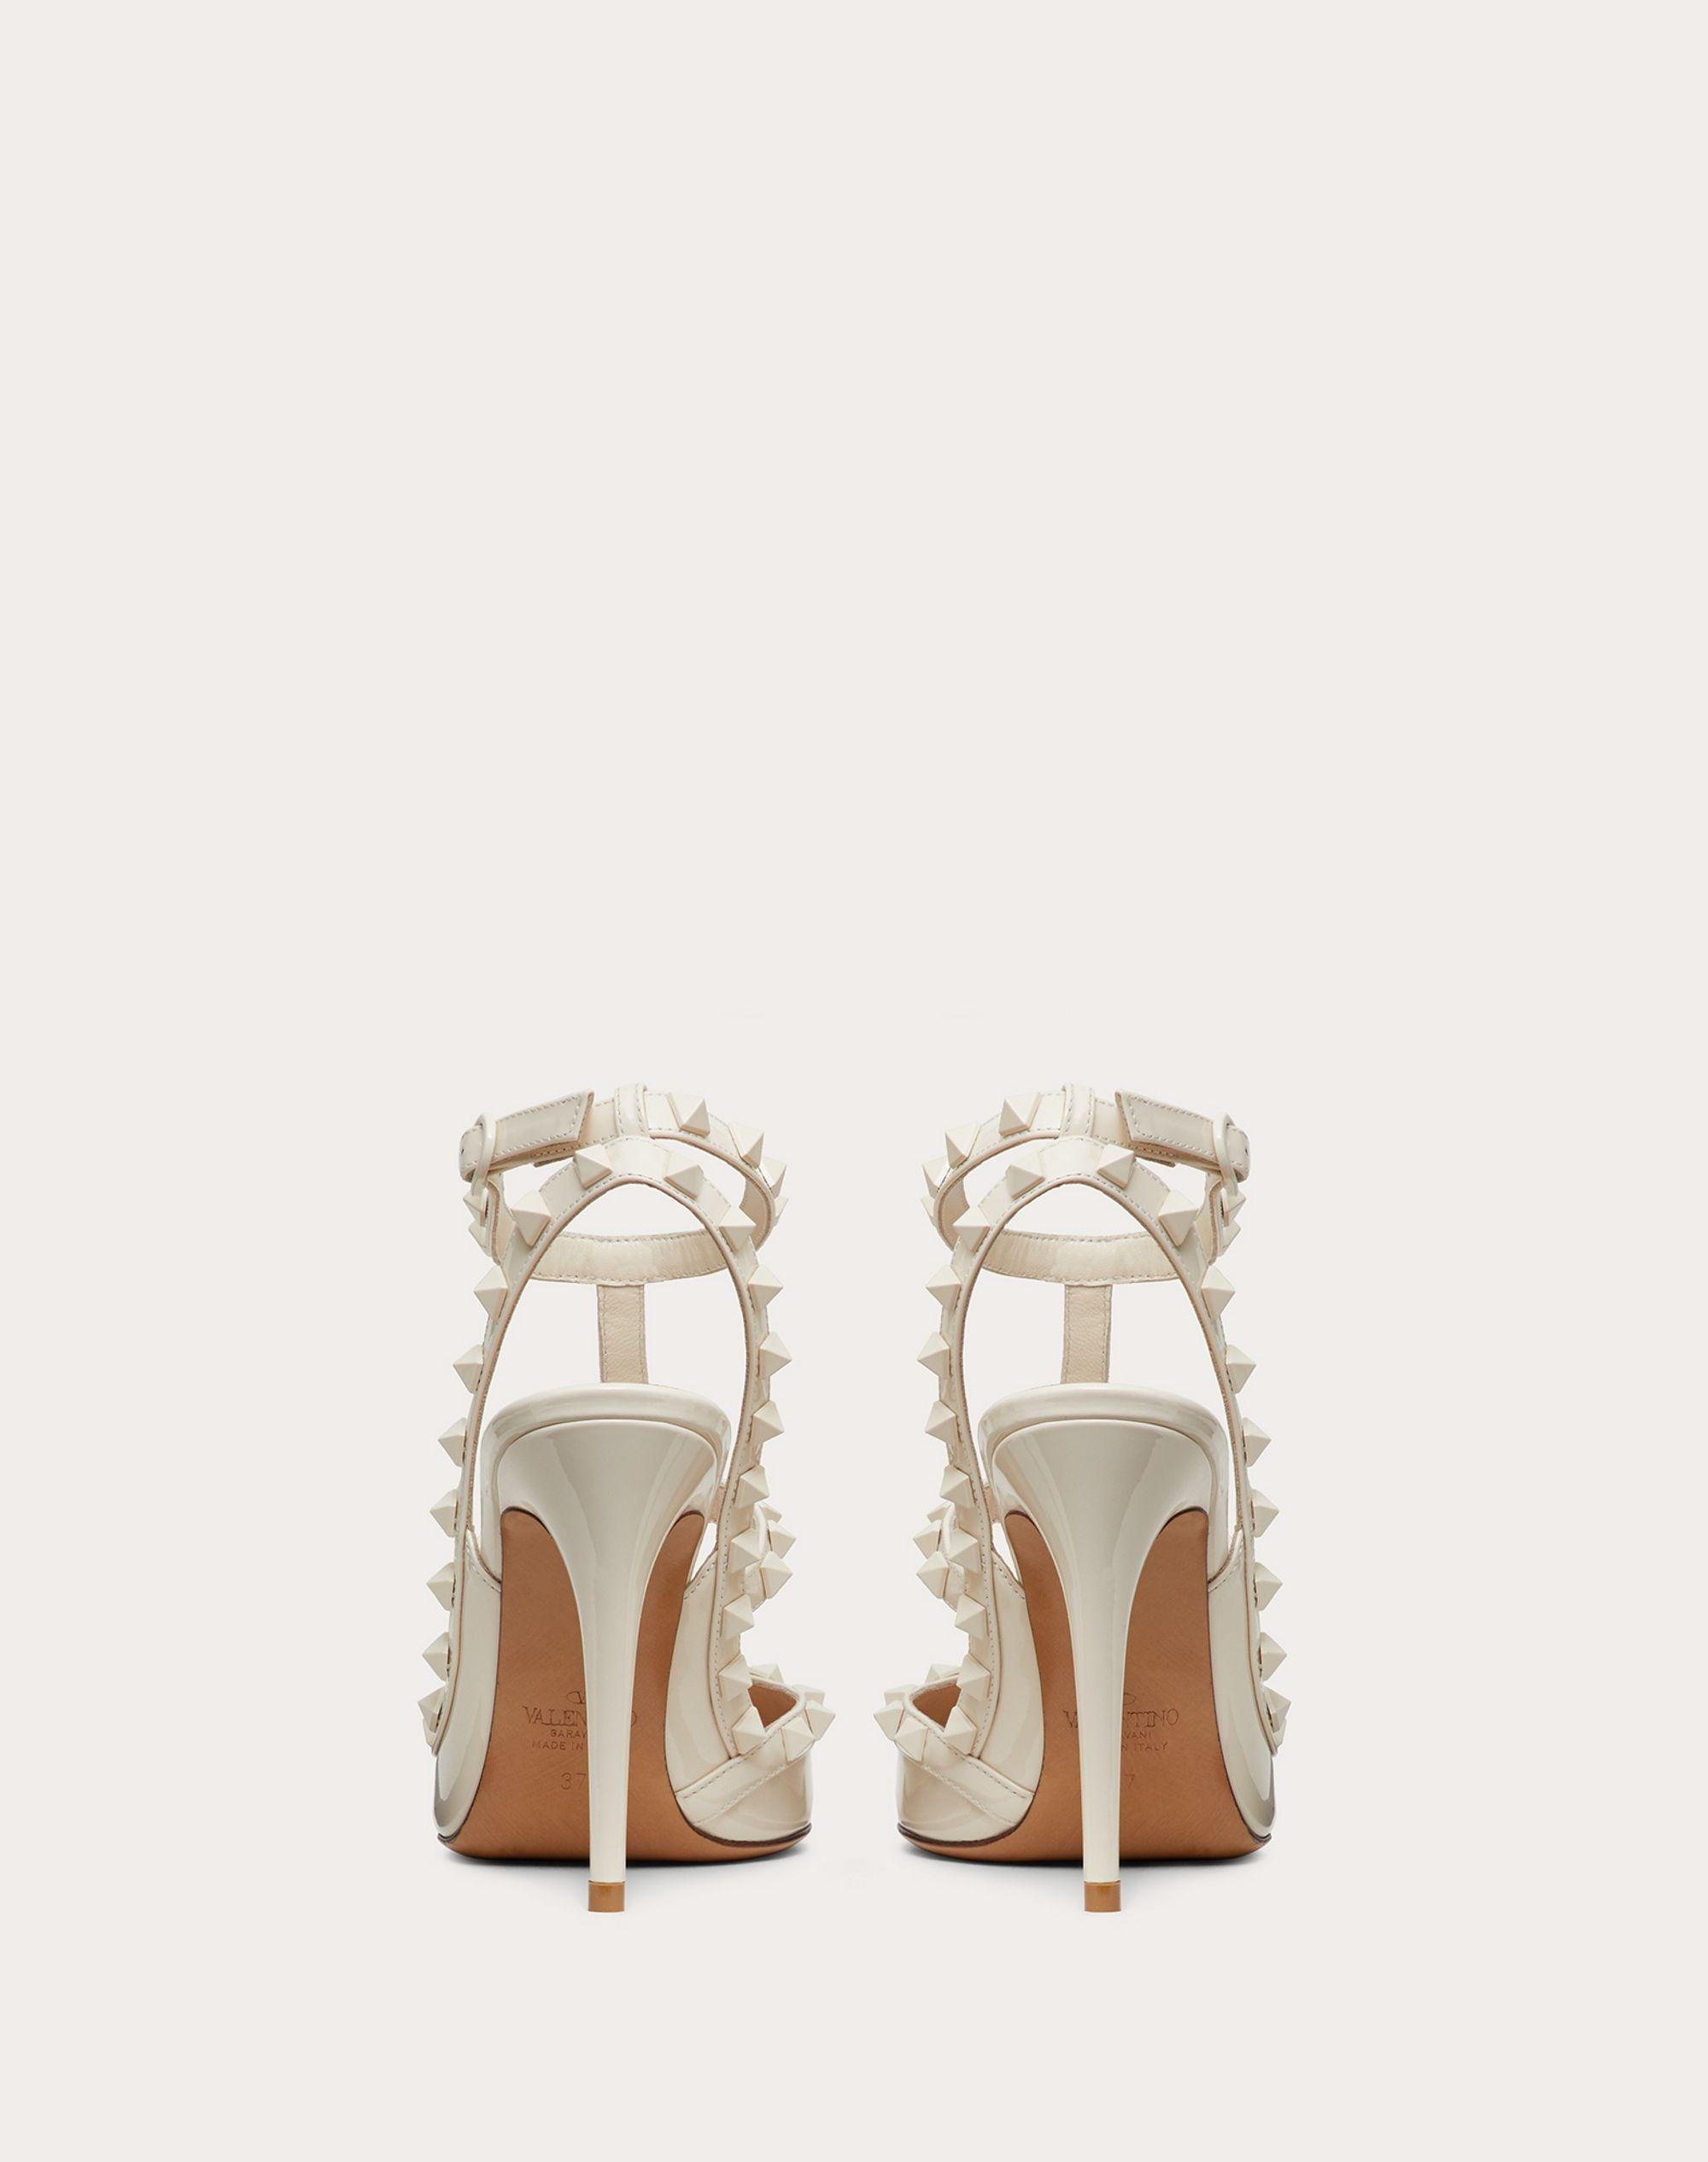 ROCKSTUD ANKLE STRAP PATENT-LEATHER PUMP WITH TONAL STUDS 100 MM 2